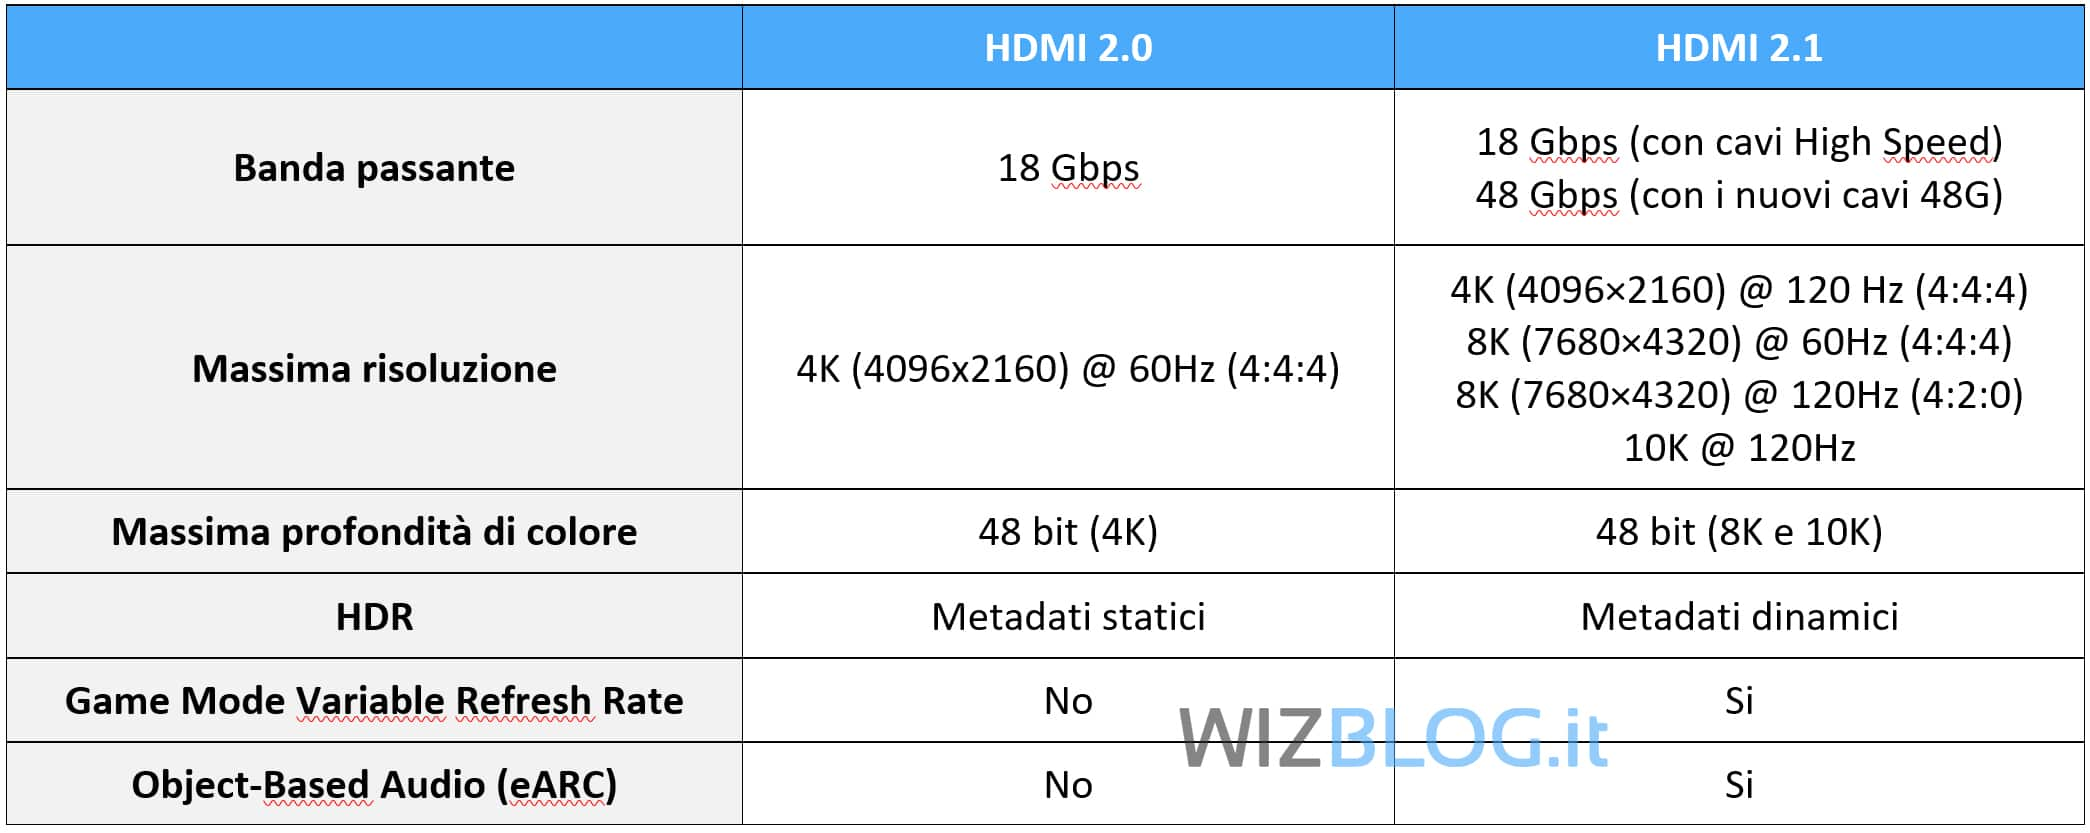 differenza hdmi 2.0 vs 2.1